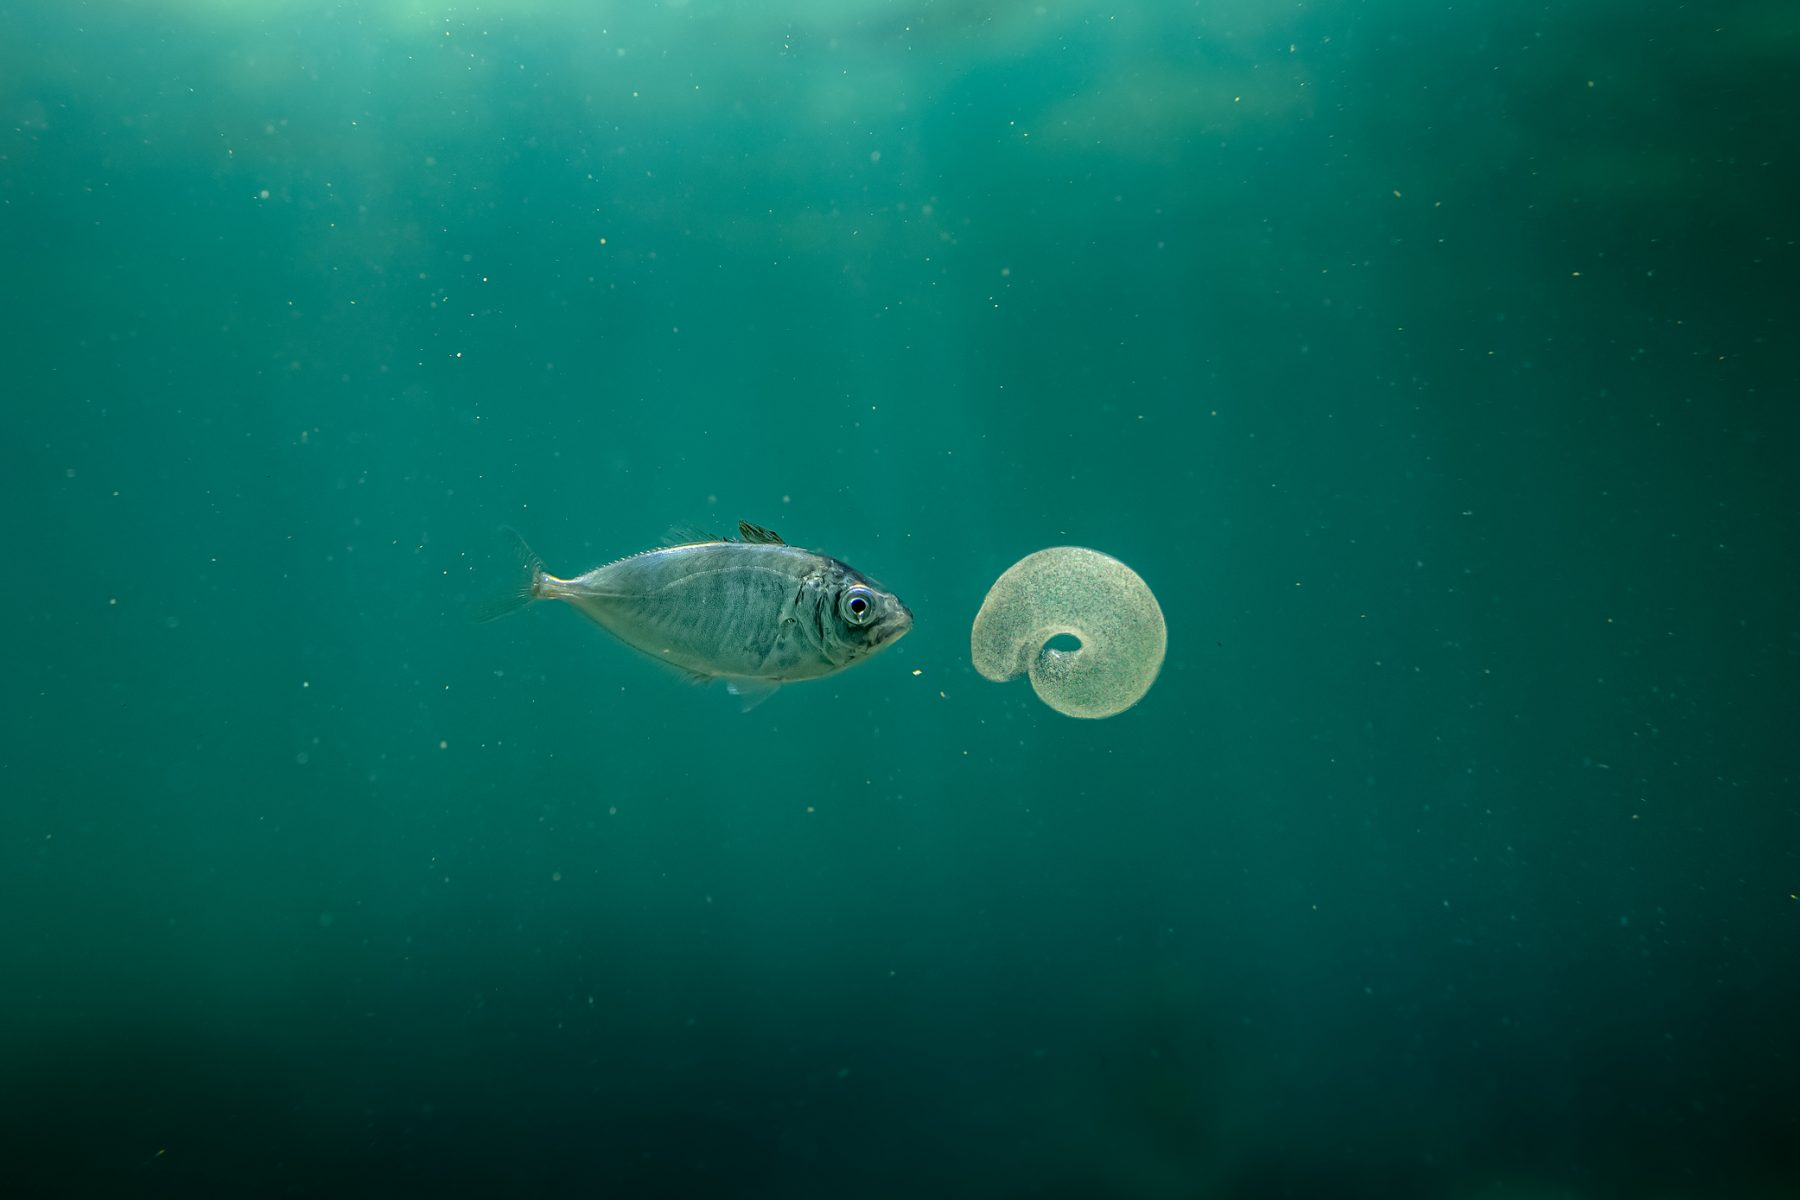 Color underwater photography by Matthew Bagley. Fish and jellyfish, ocean, fine art, marine.